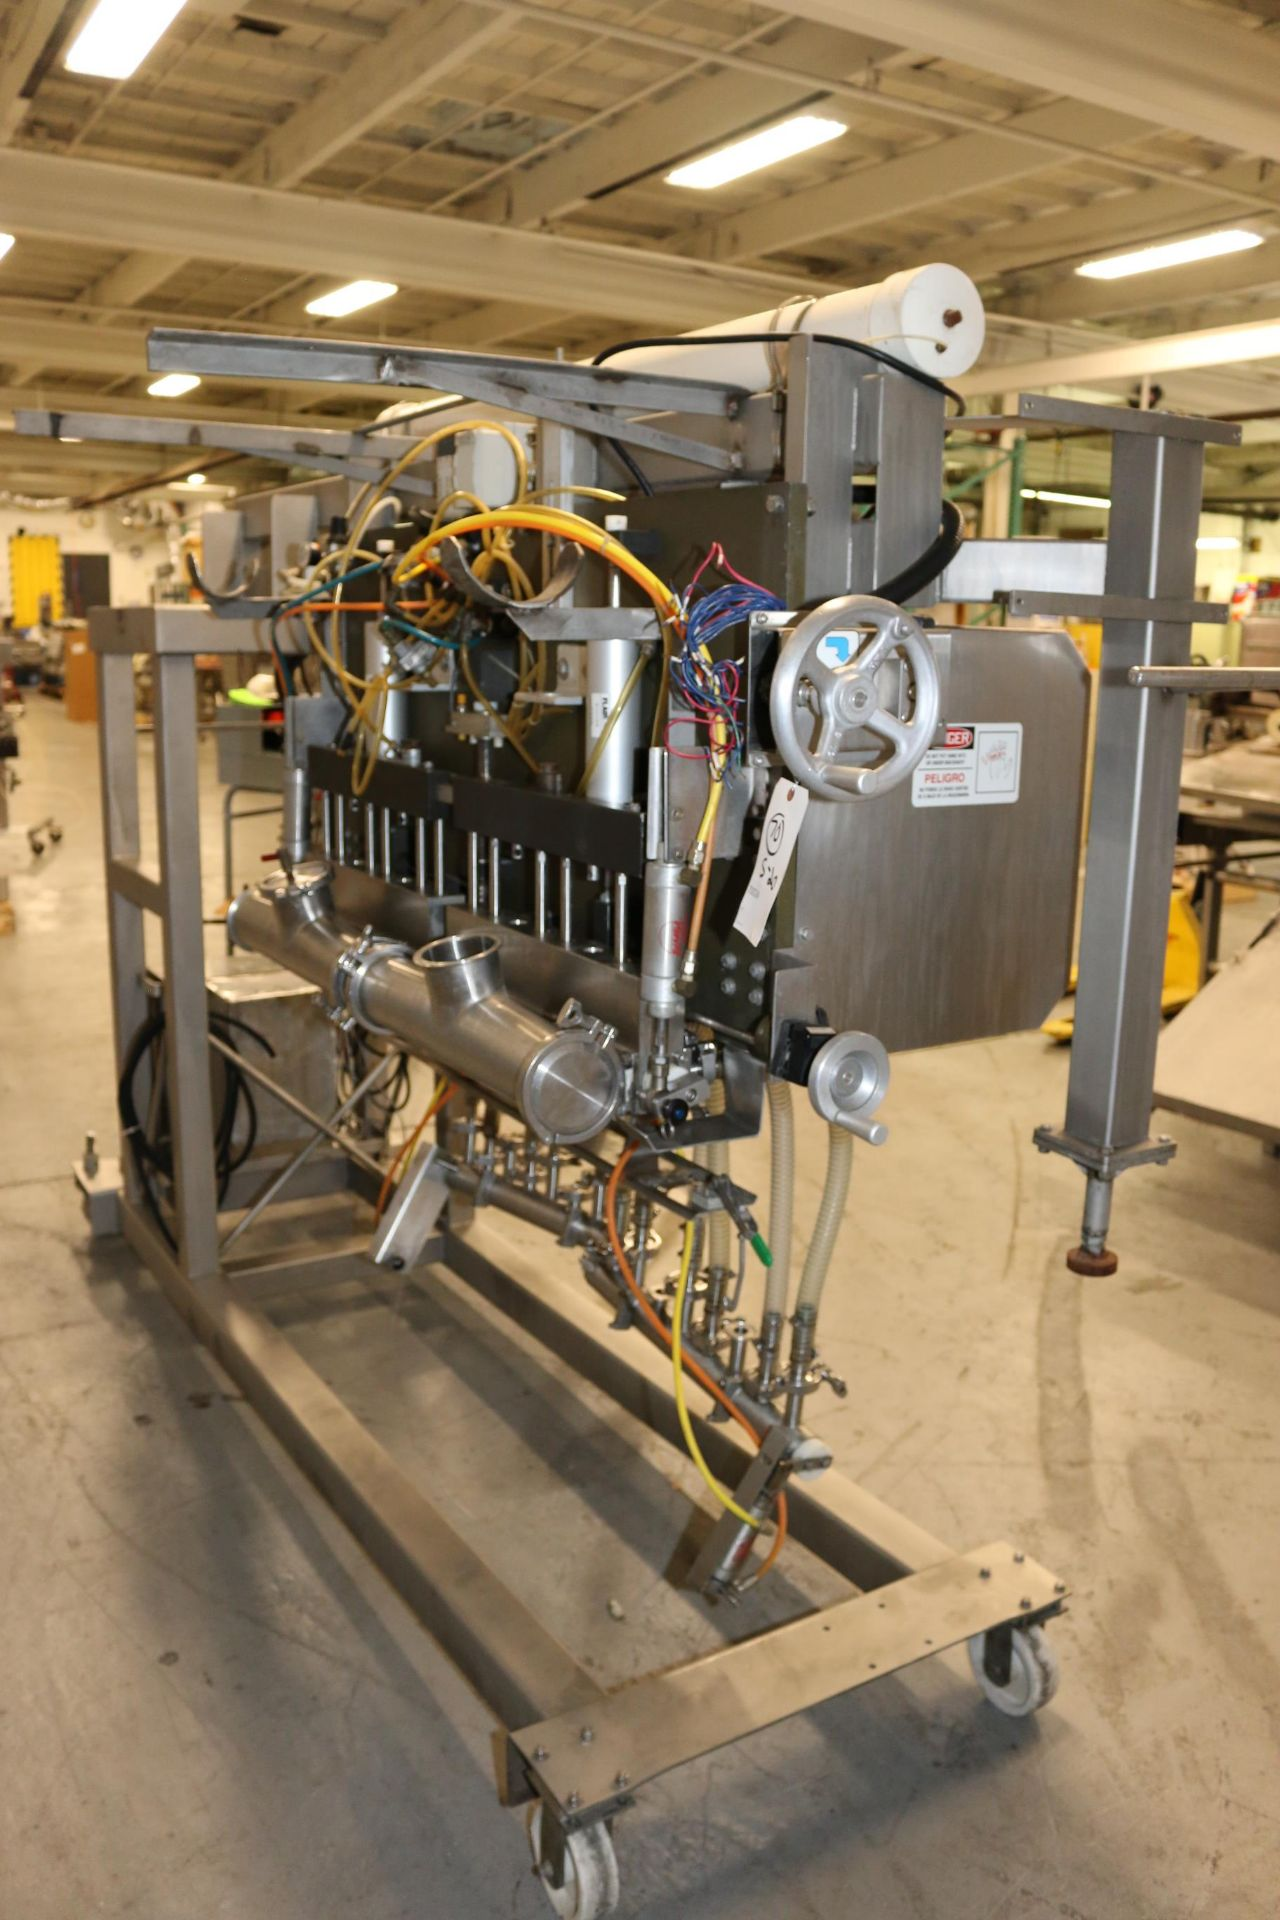 Lot 40 - Hinds-Bock 16-Head S/S Piston Filler, M/N 16P-02V, S/N 4537, with S/S Control Panel with Allen-